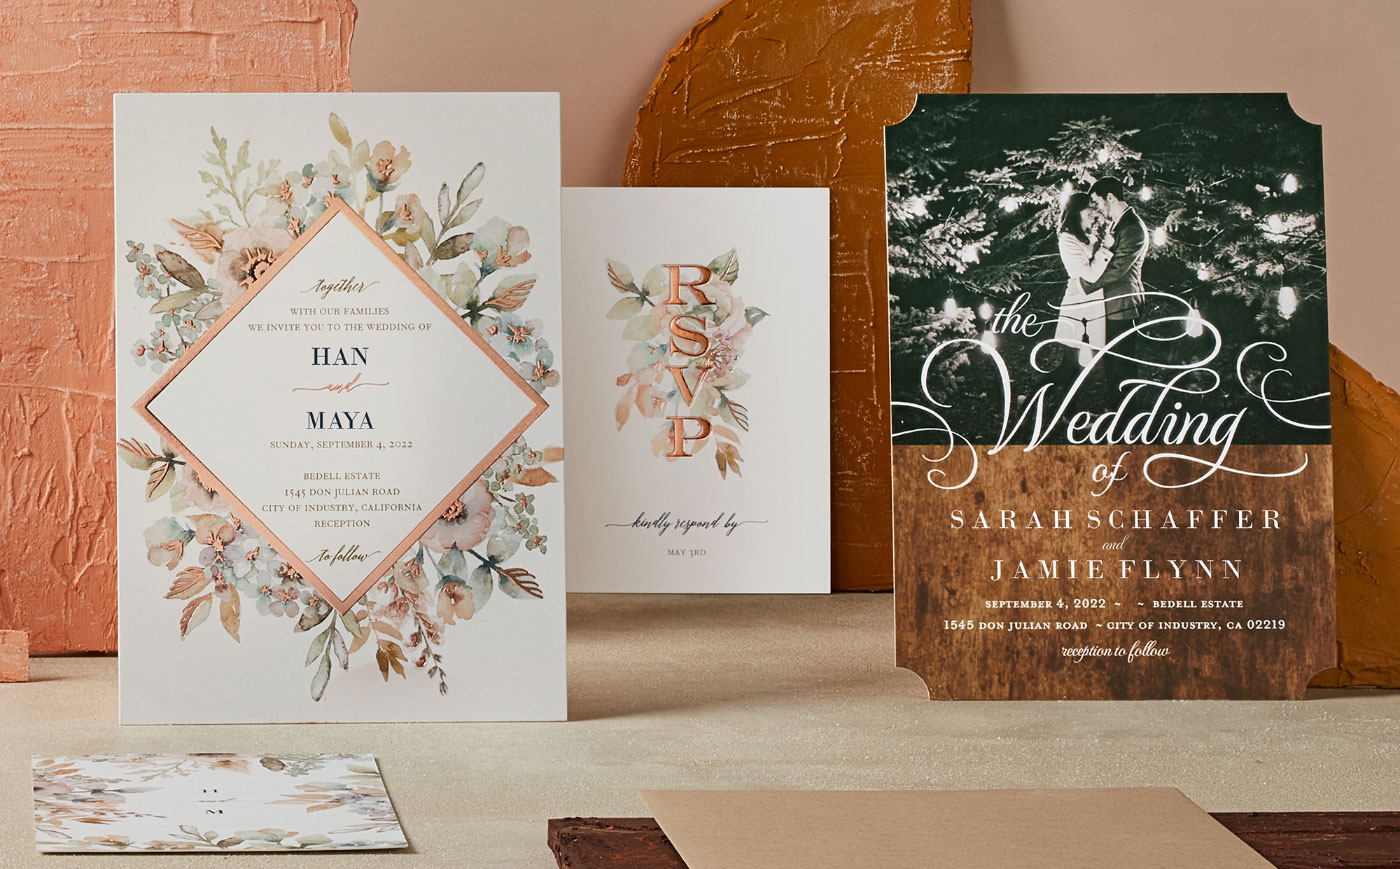 Personalized wedding invitations on wood table with floral details